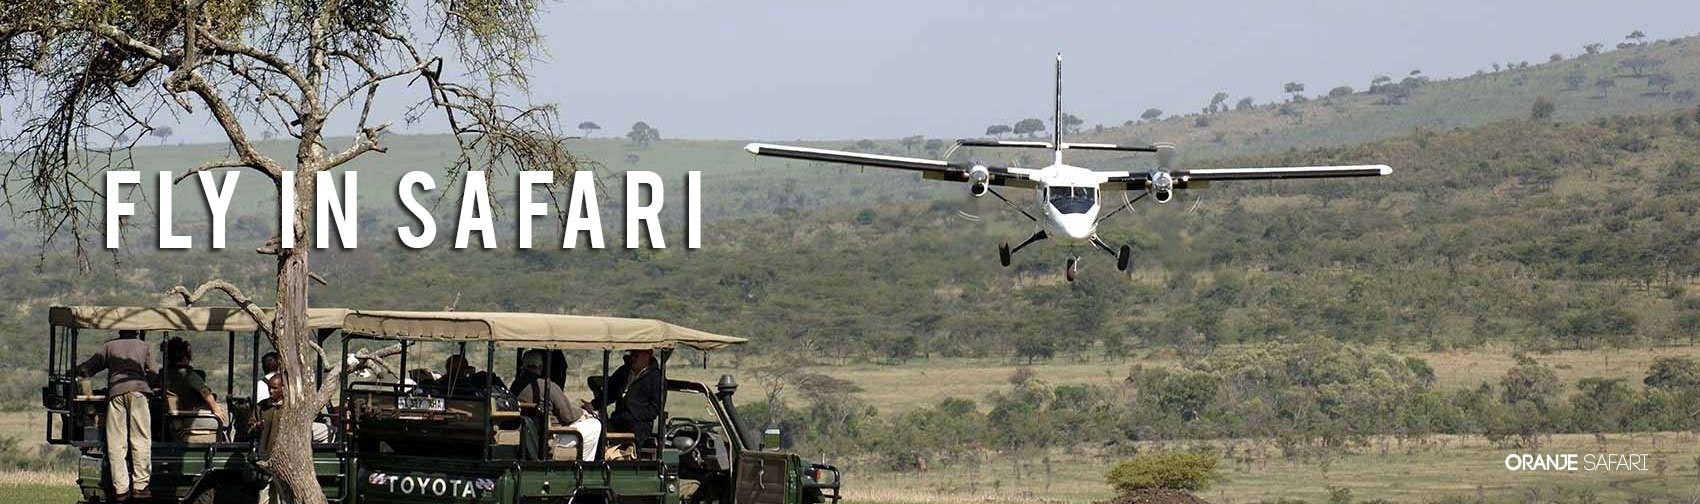 fly in safari kenya